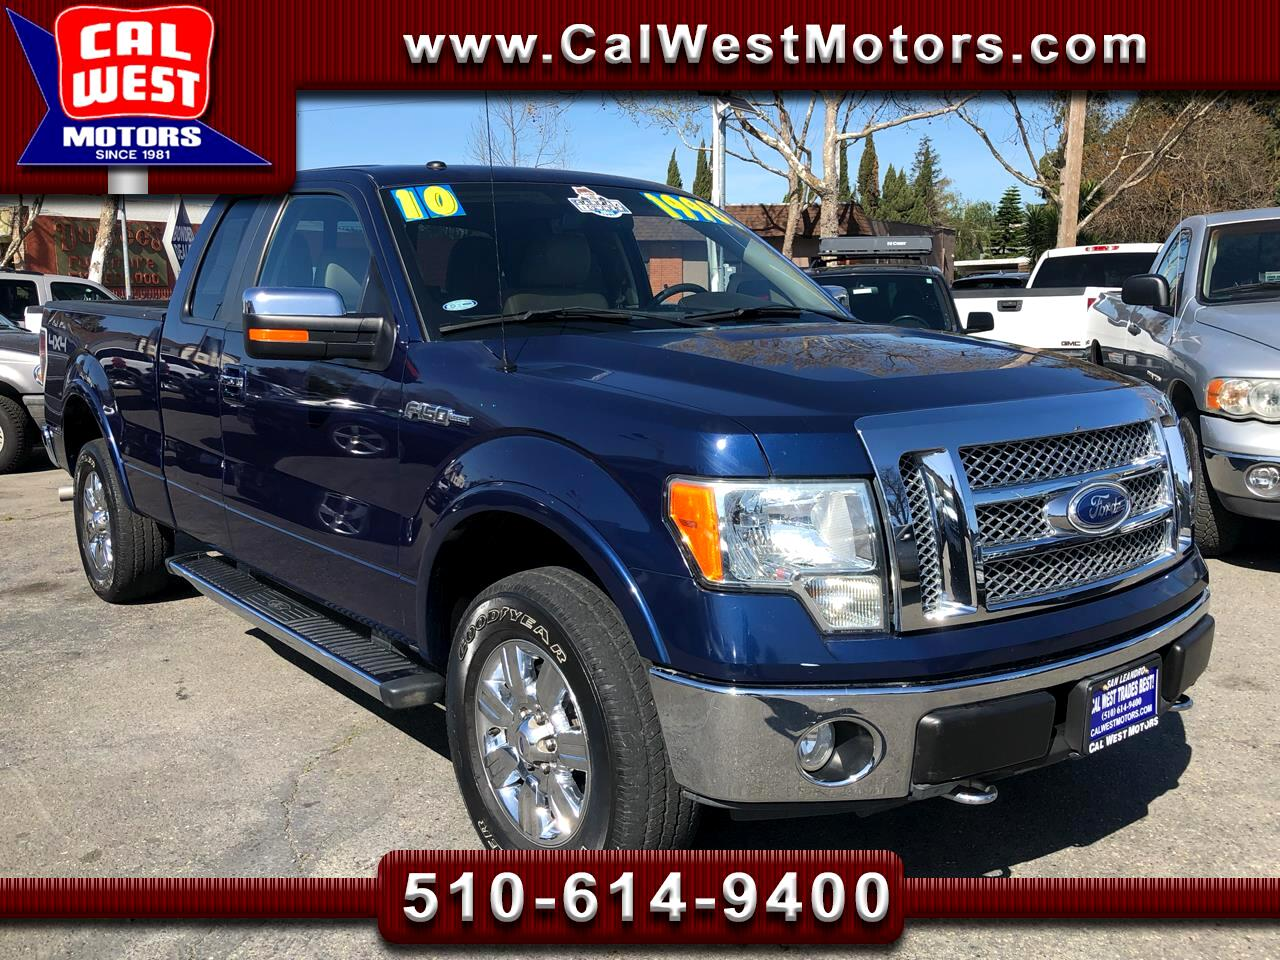 2010 Ford F-150 4X4 Supercab Lariat 1Owner Loaded GreatMtnceHistor